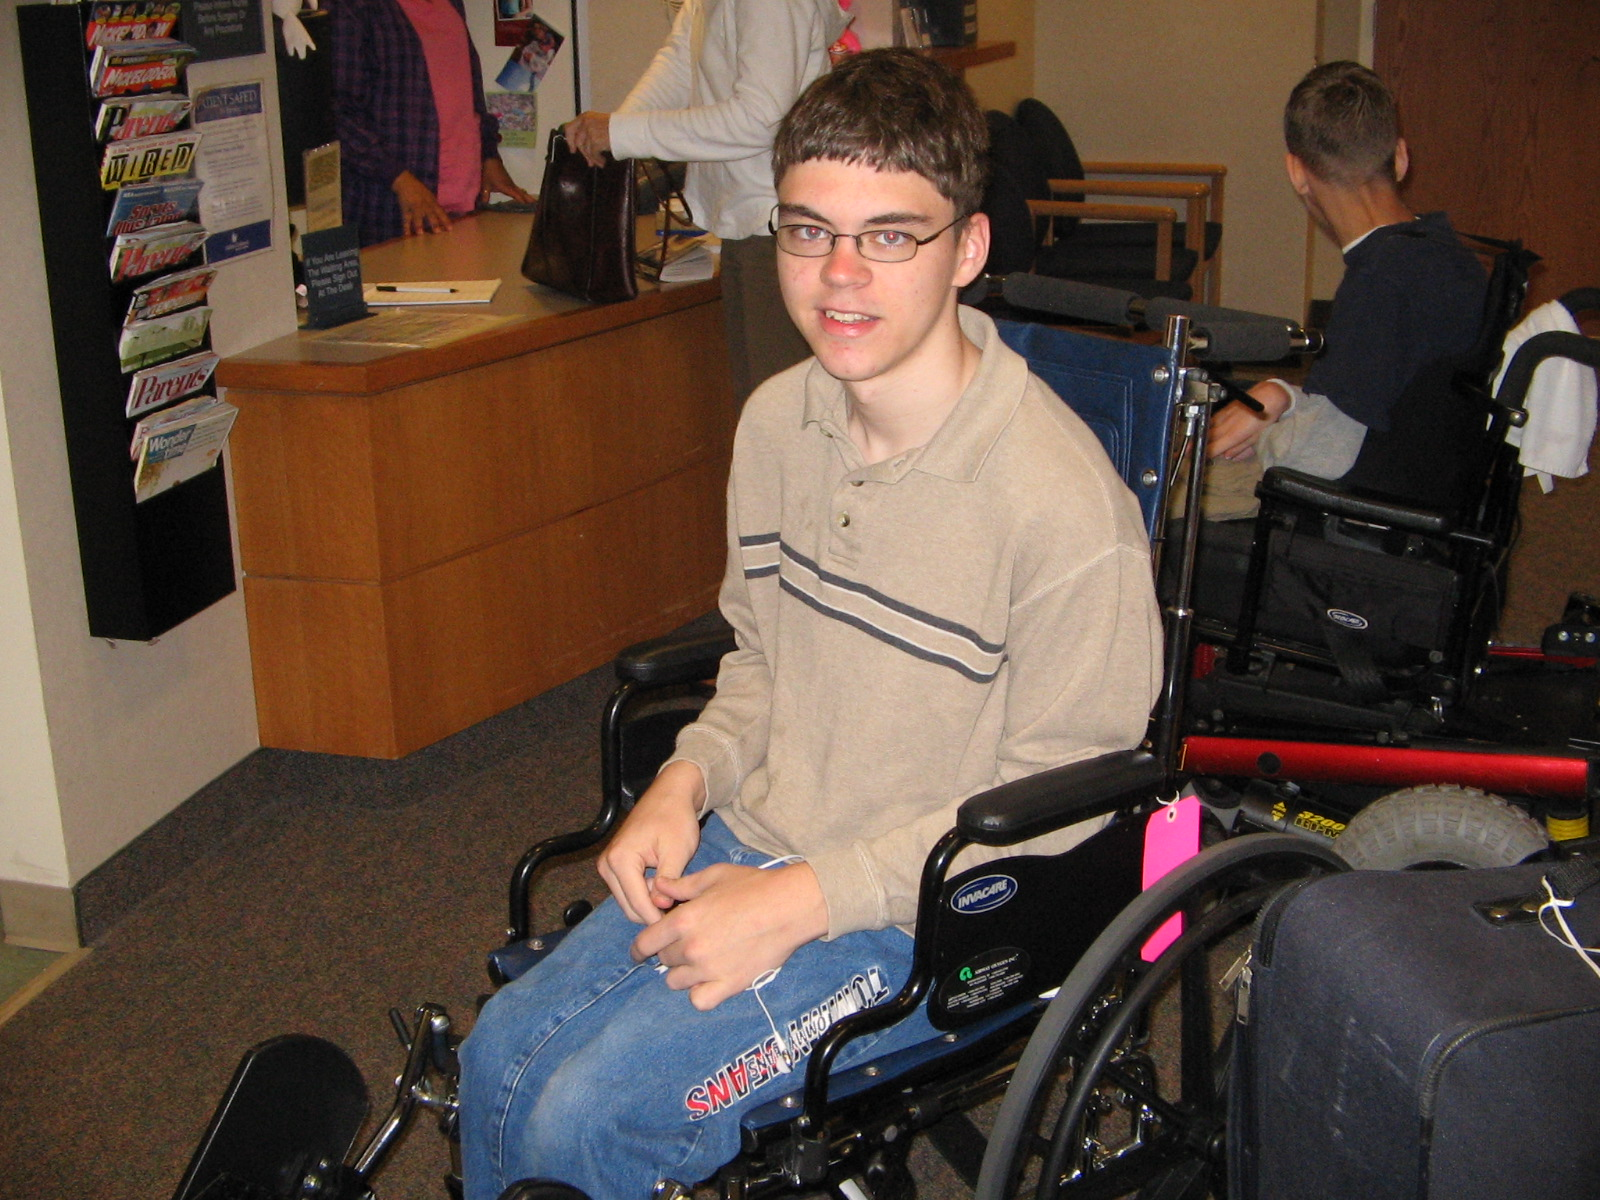 Michael with Cerebral Palsy